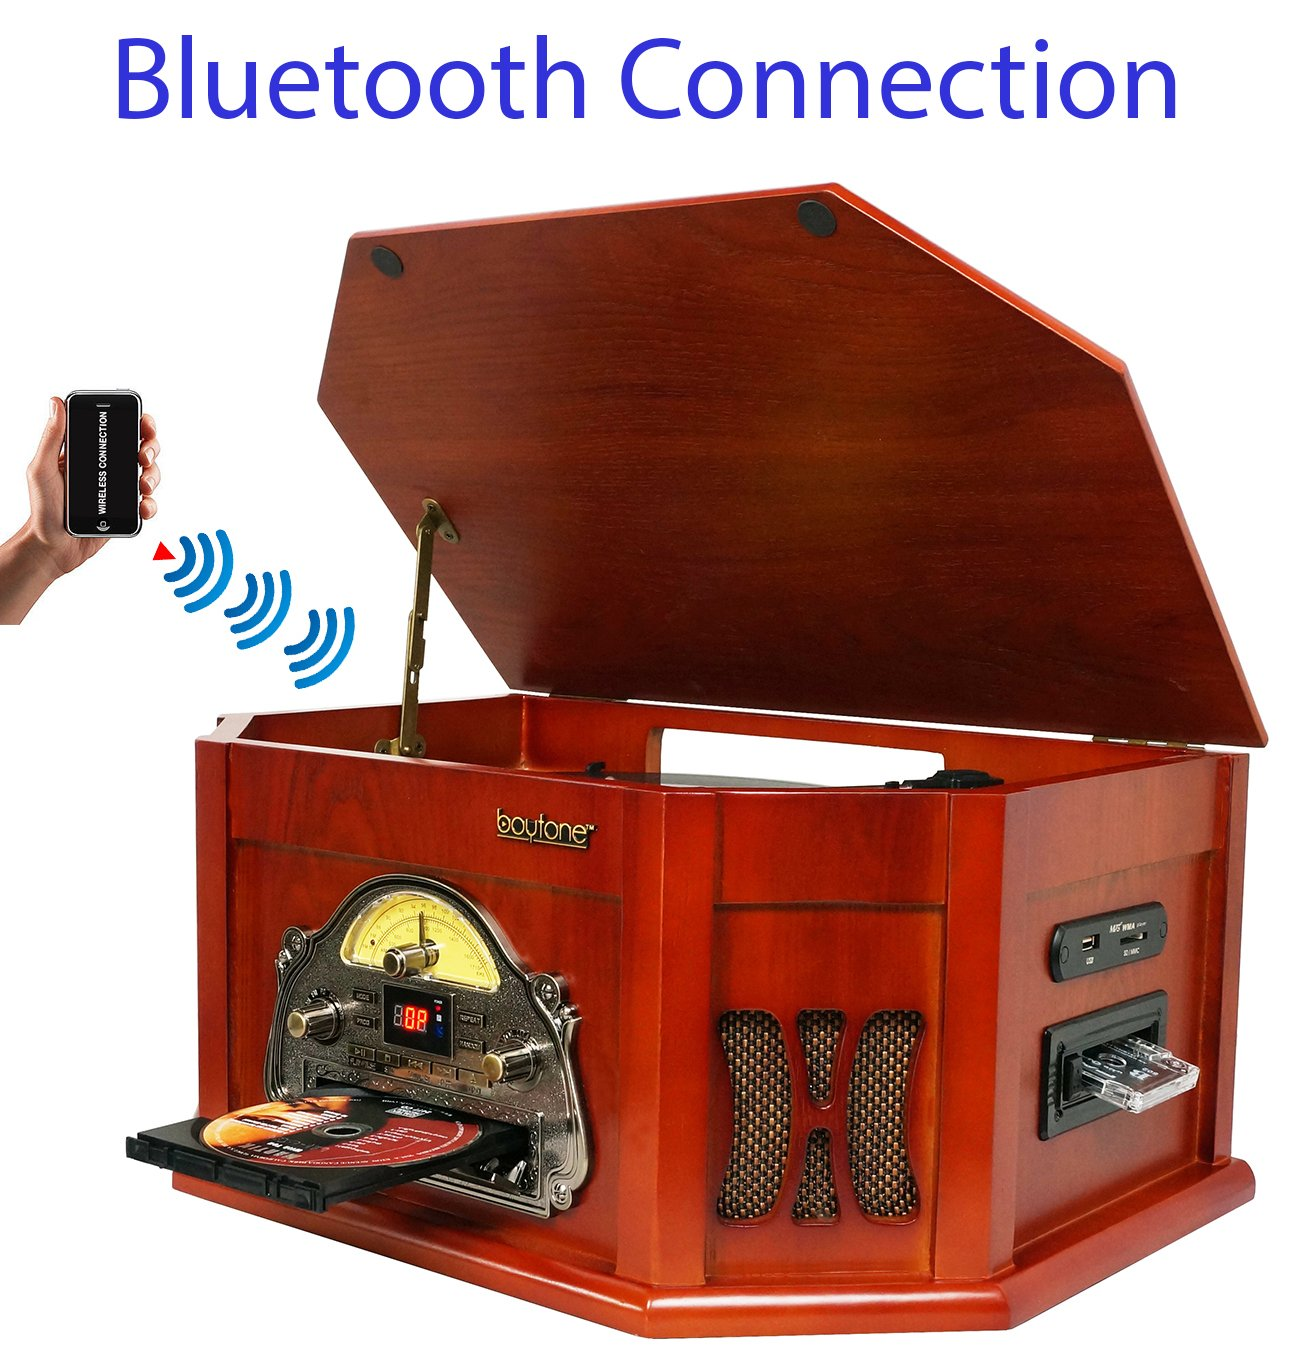 Boytone BT-25CH 8-in-1 Natural Wood Classic Turntable Stereo System with Bluetooth Connection, Vinyl Record Player, AM/FM, CD, Cassette, USB, SD Slot. 2 Built-in Speakers, Remote Control, MP3 Player by Boytone